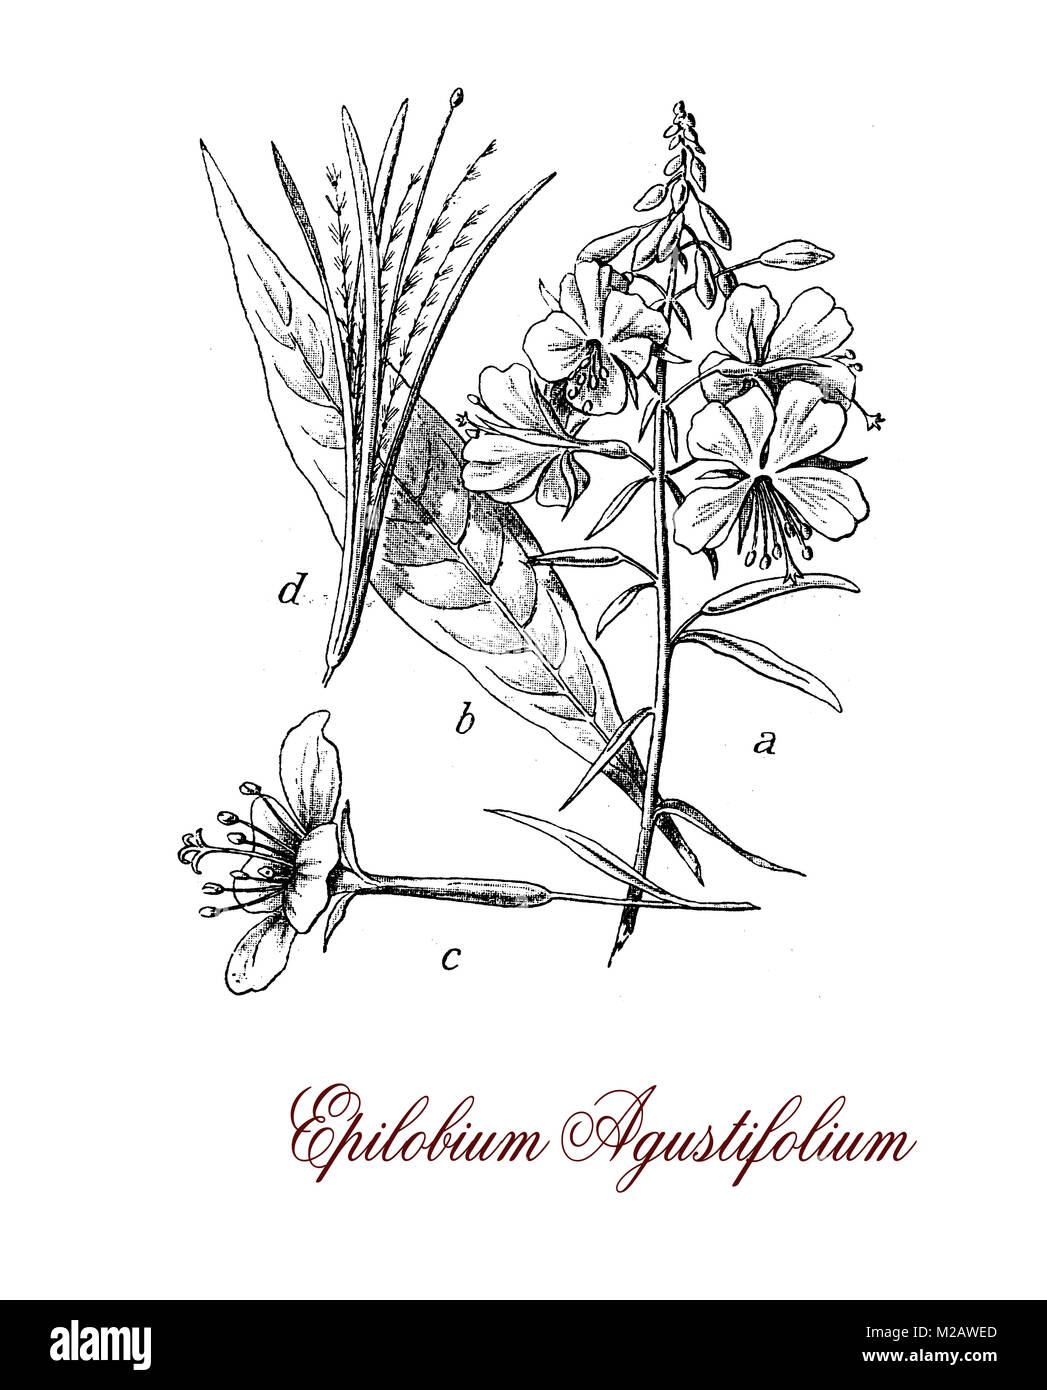 Vintage engraving of Chamaenerion or Epilobium angustifolium, plant with narrow leaves and magenta-pink flowers - Stock Image